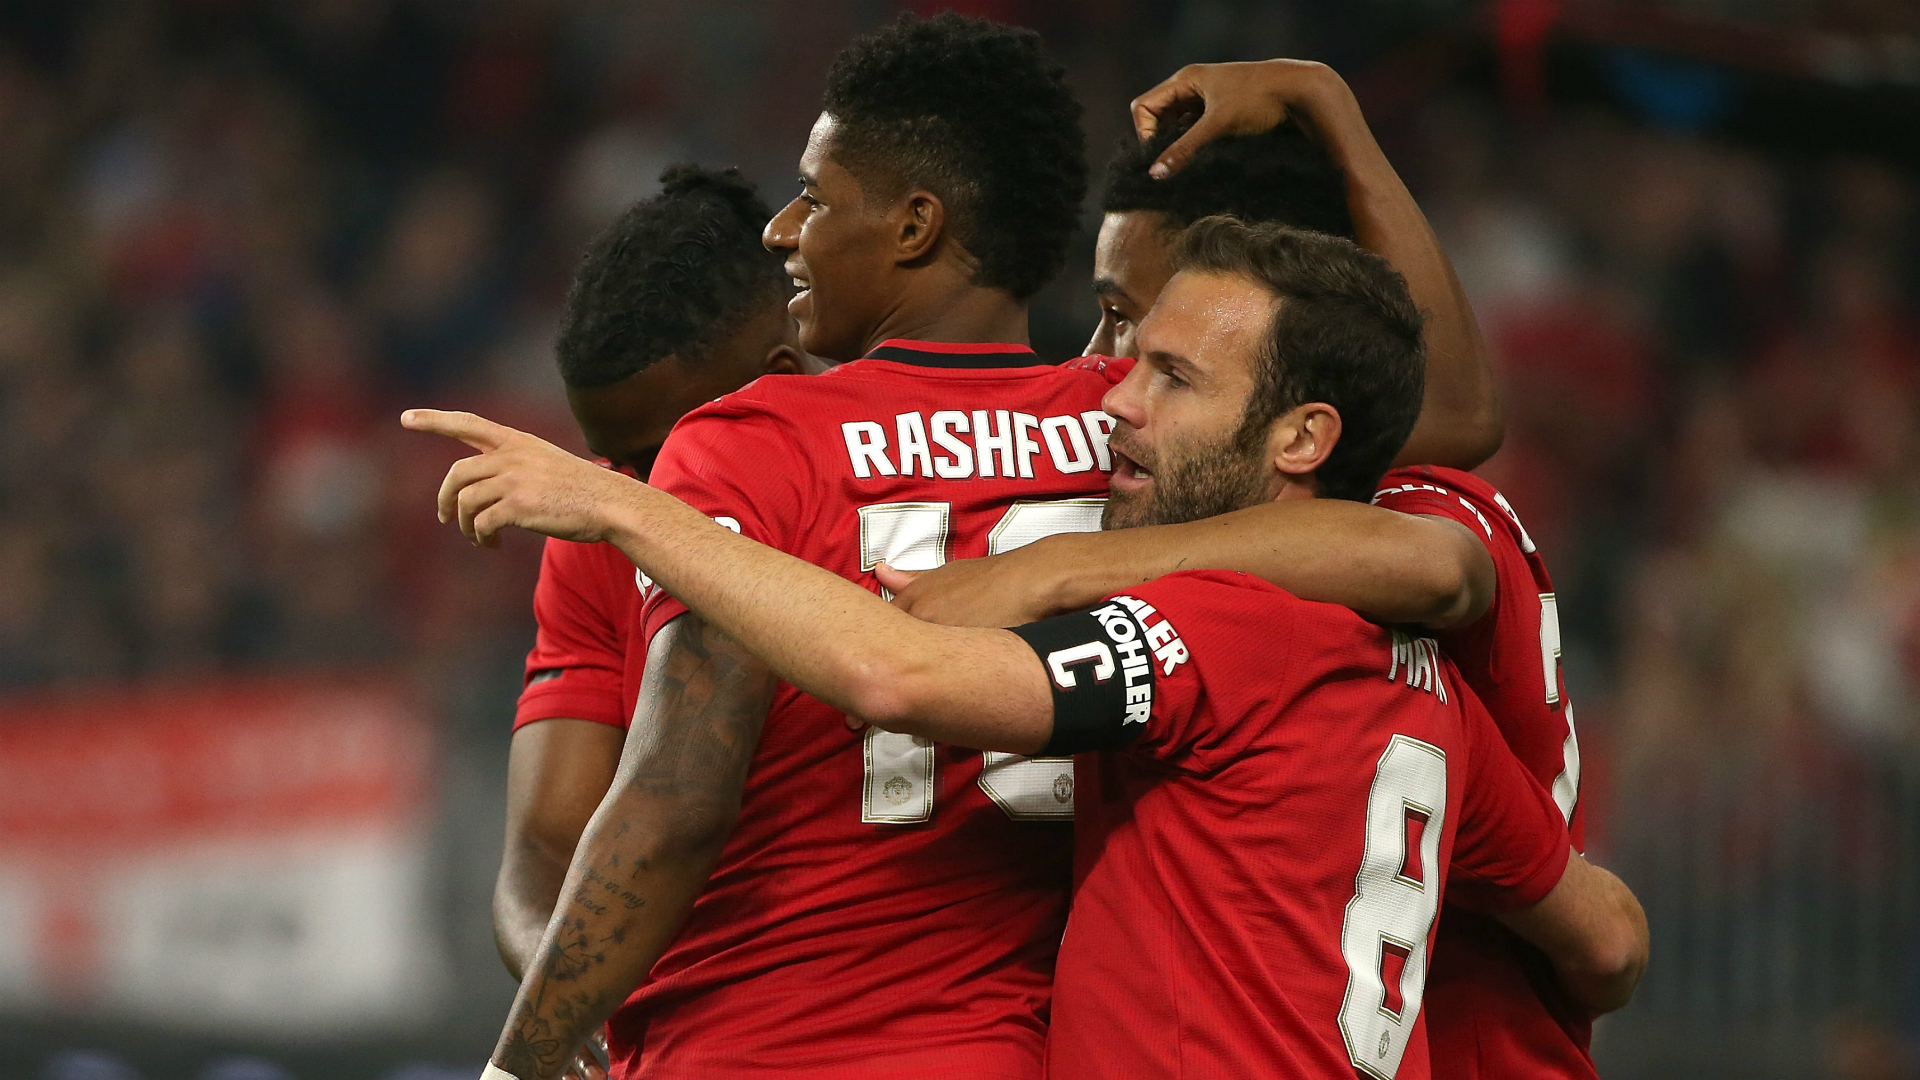 Manchester United rout Leeds in impressive pre-season display